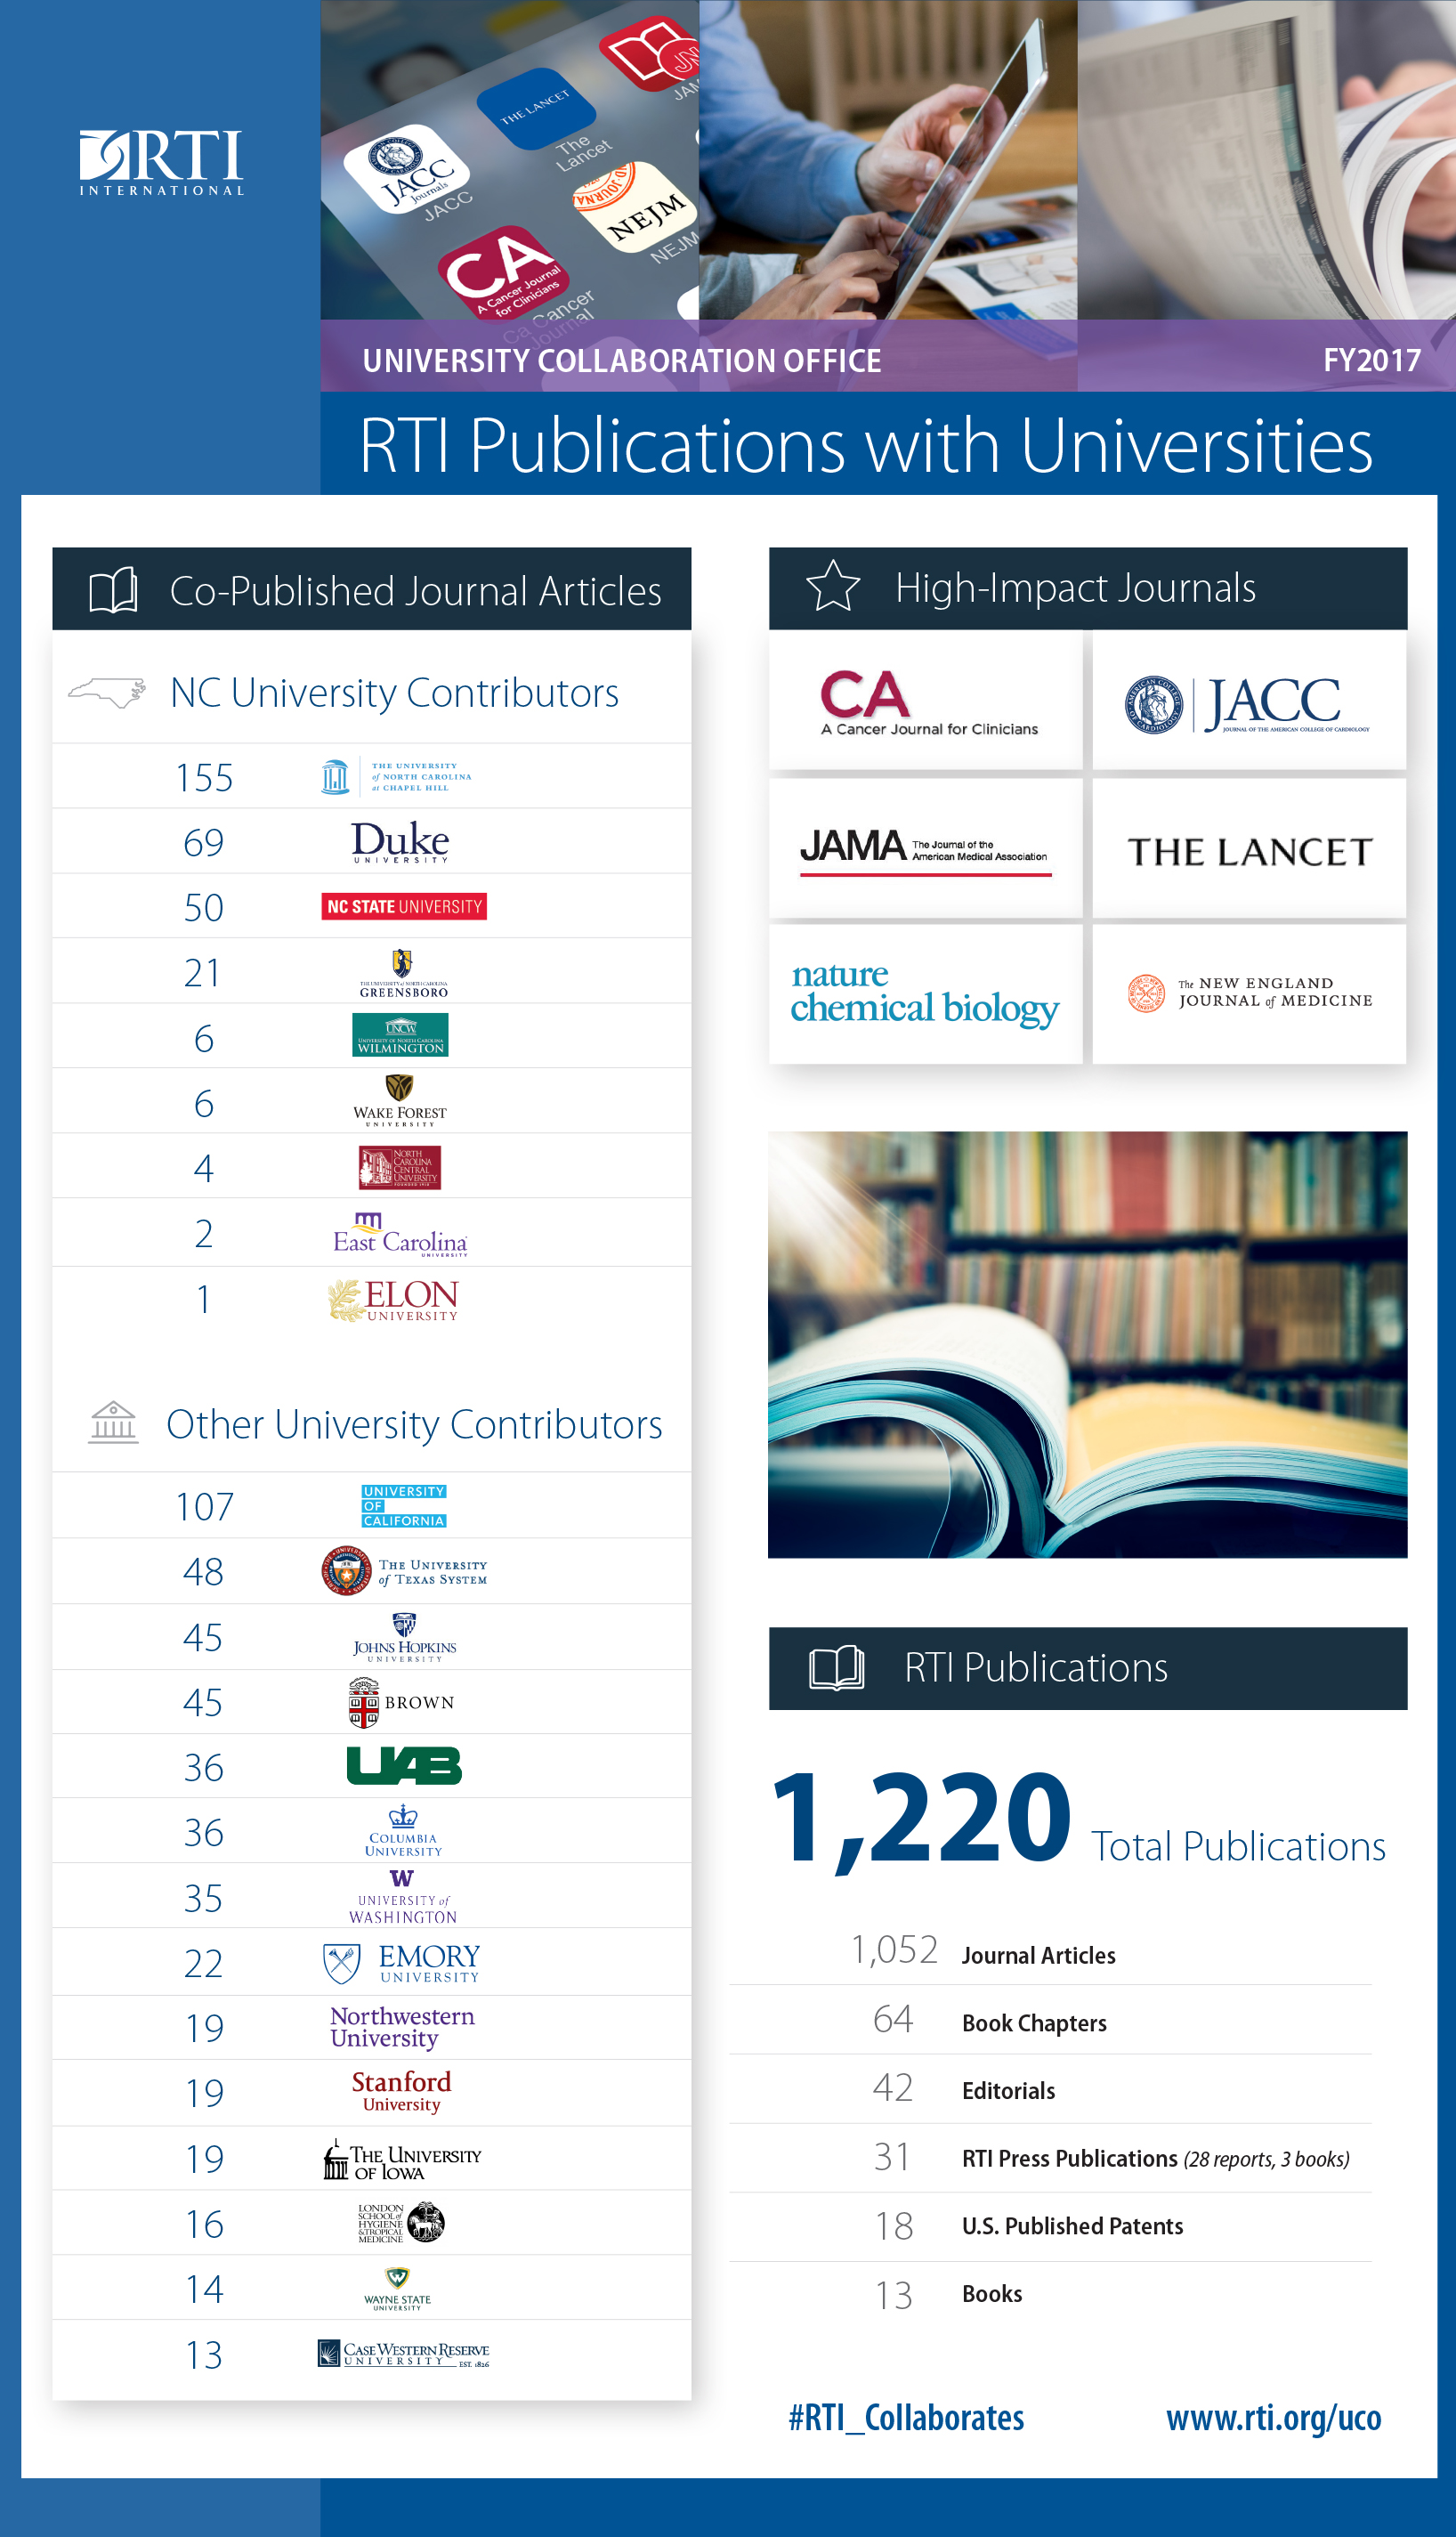 RTI Publications with Universities